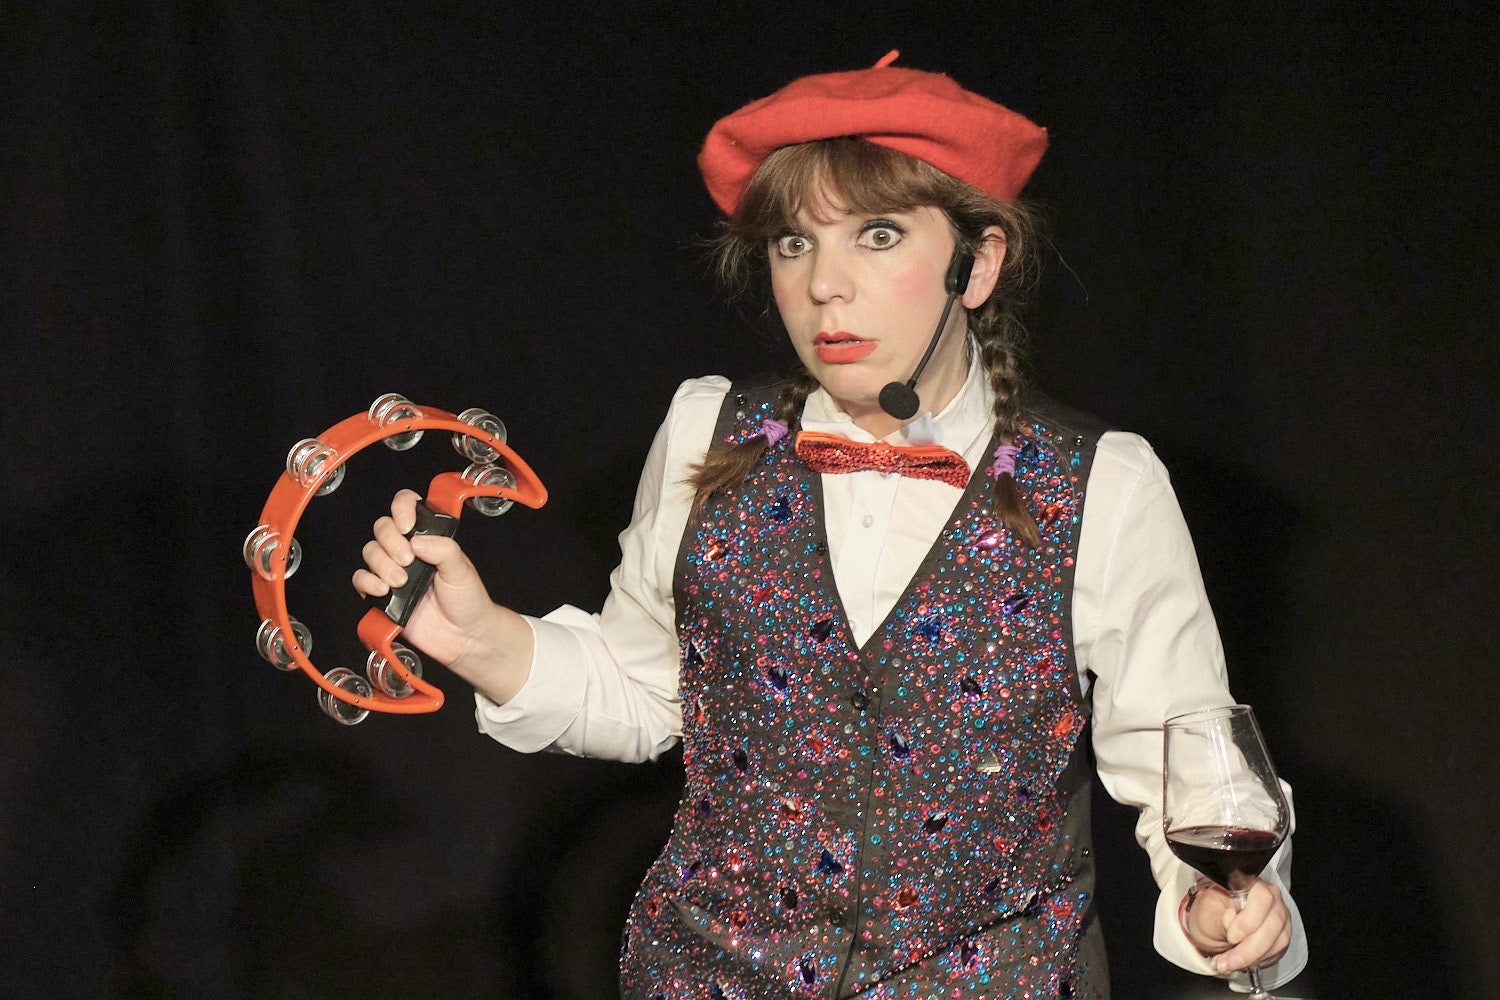 Anna Lou Larkin, with red beret and bow tie, tambourine and a glass of red wine, in 'Le Wine Club'